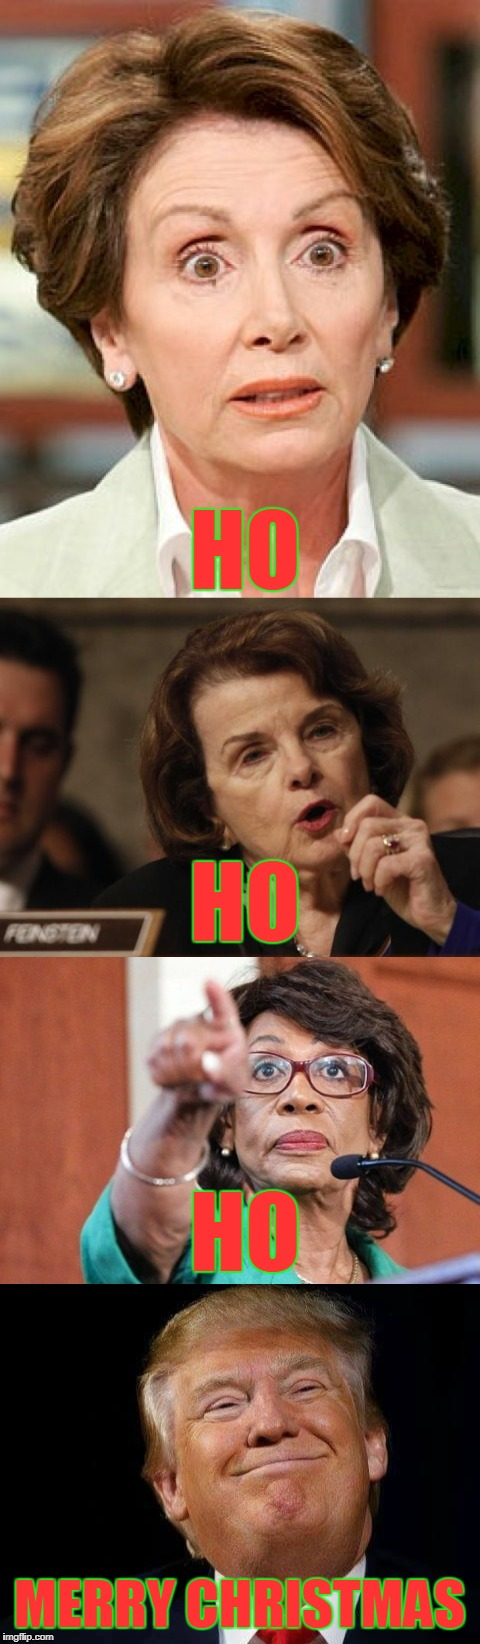 Thank you Santa! | HO HO HO MERRY CHRISTMAS | image tagged in hoes,santa clause,donald trump,funny memes,politics,nancy pelosi | made w/ Imgflip meme maker